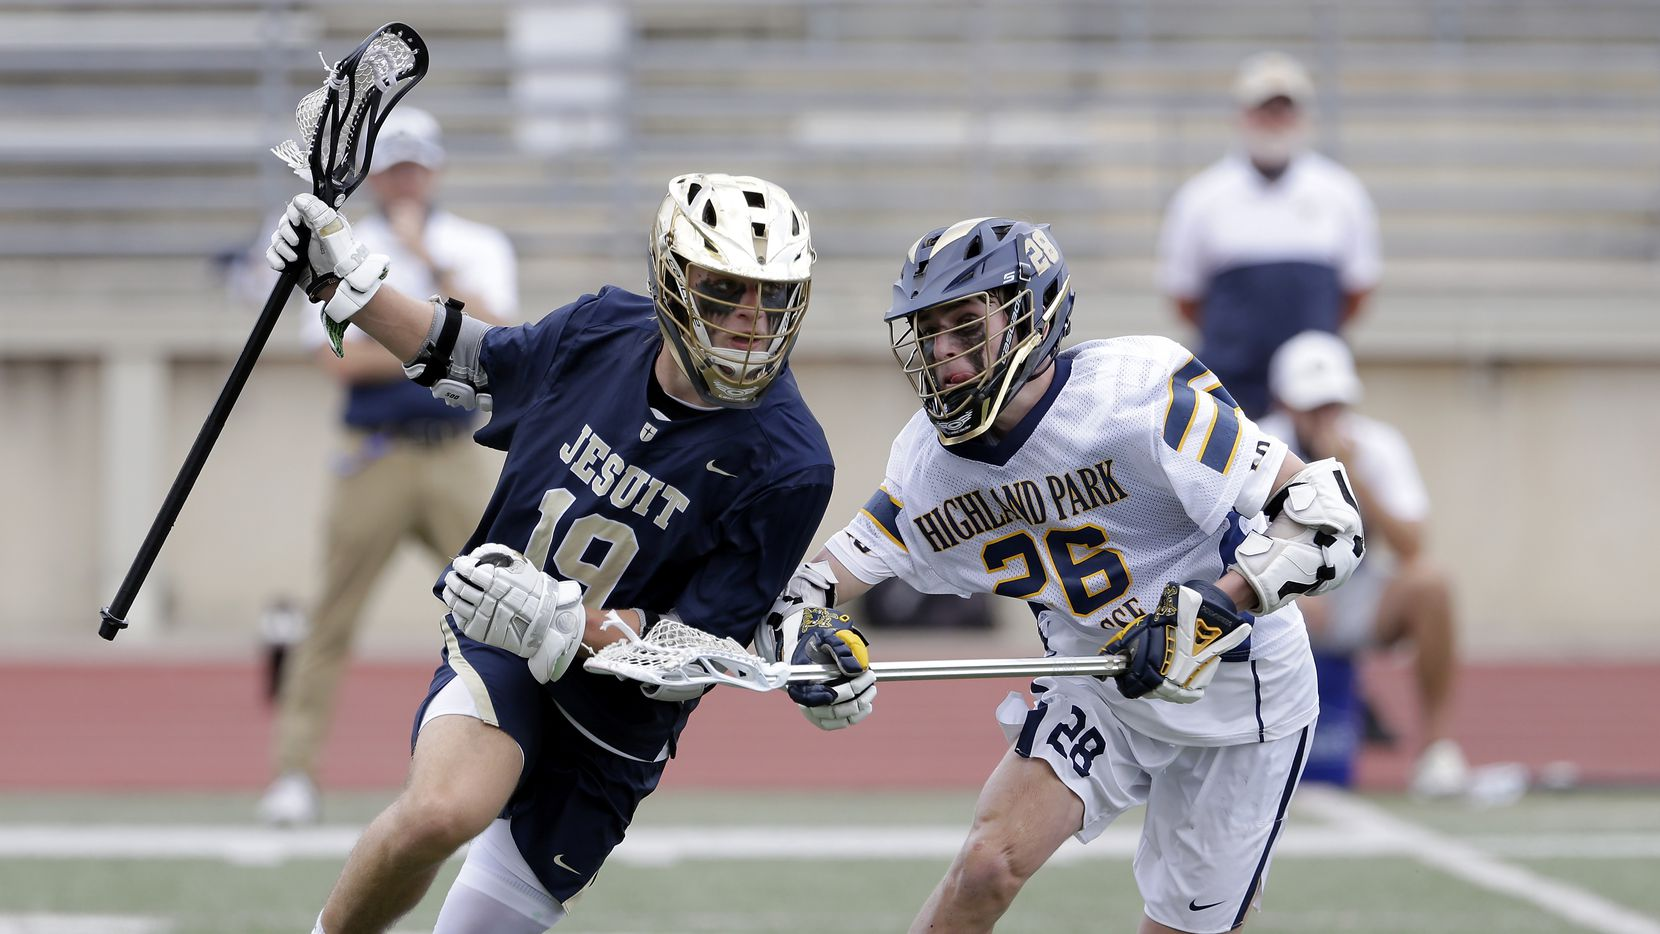 Dallas Jesuit's Caiden Vlasimsky (19) is stick checked by Highland Park's Rhodes Crow (26) during the Class AA Texas High School Lacrosse League State Championship game held at George Turner Stadium in Humble, Texas on Sunday, May 9, 2021.